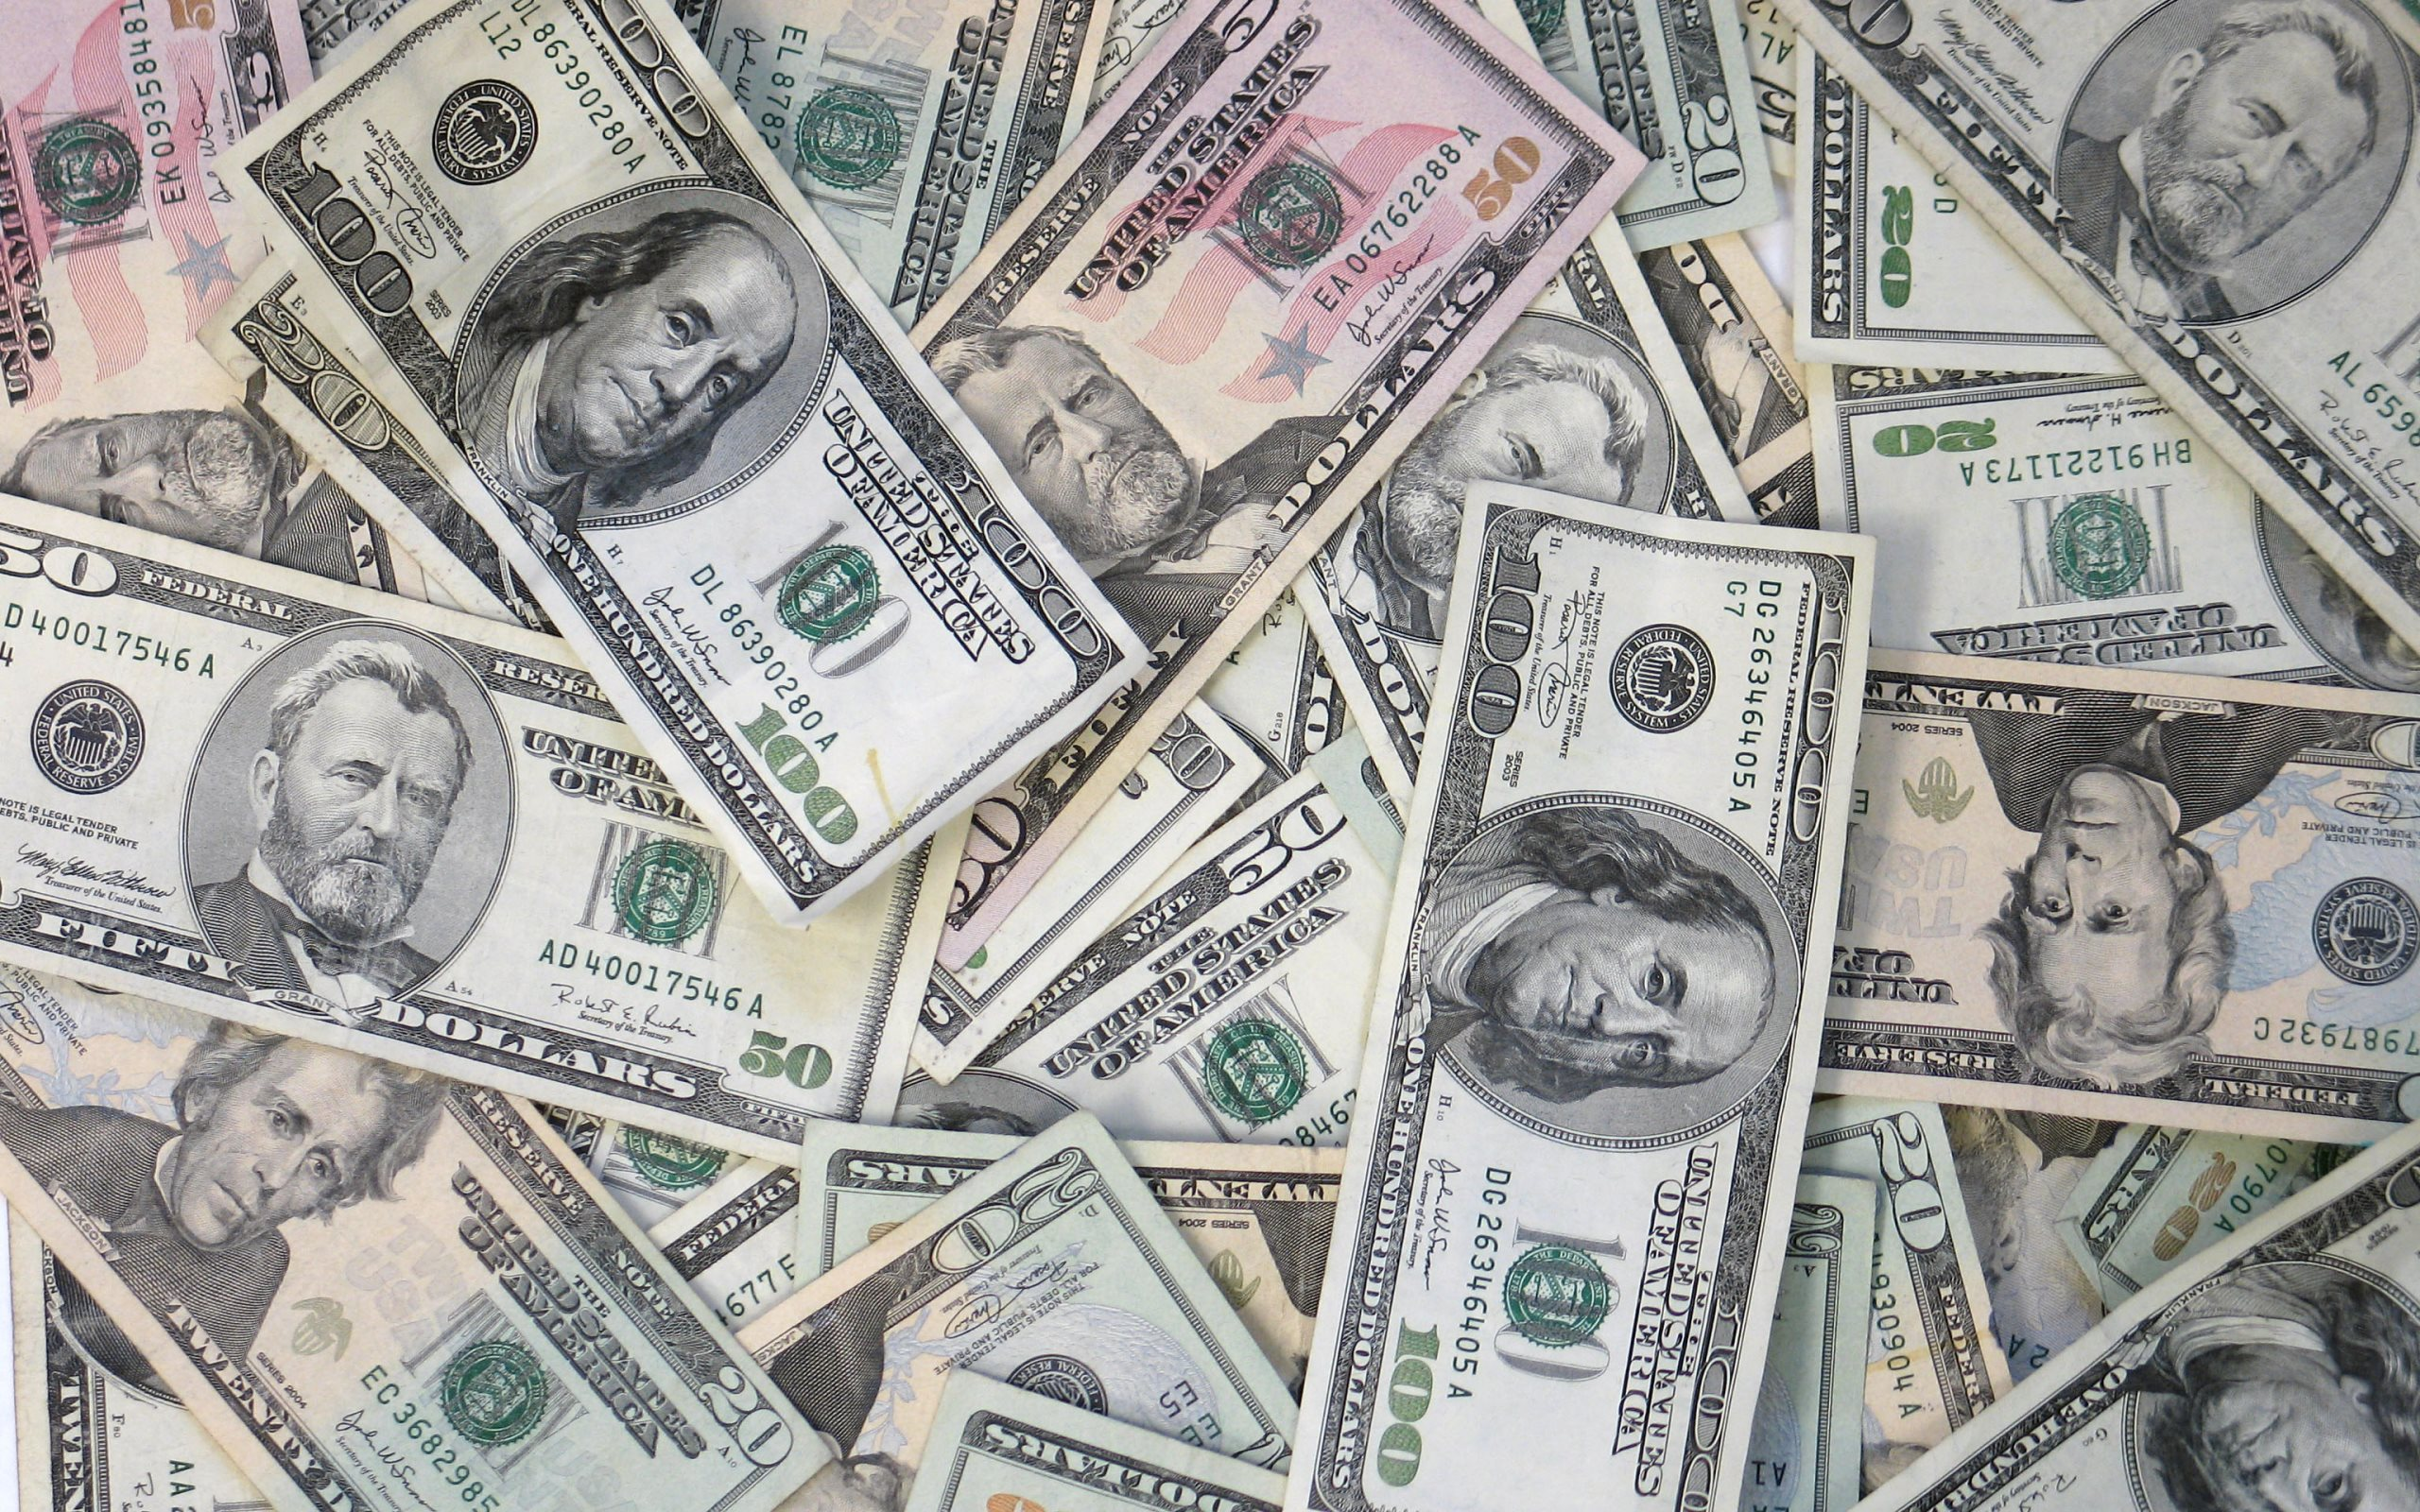 Dollars Full HD Wallpaper And Background 2560x1600 ID